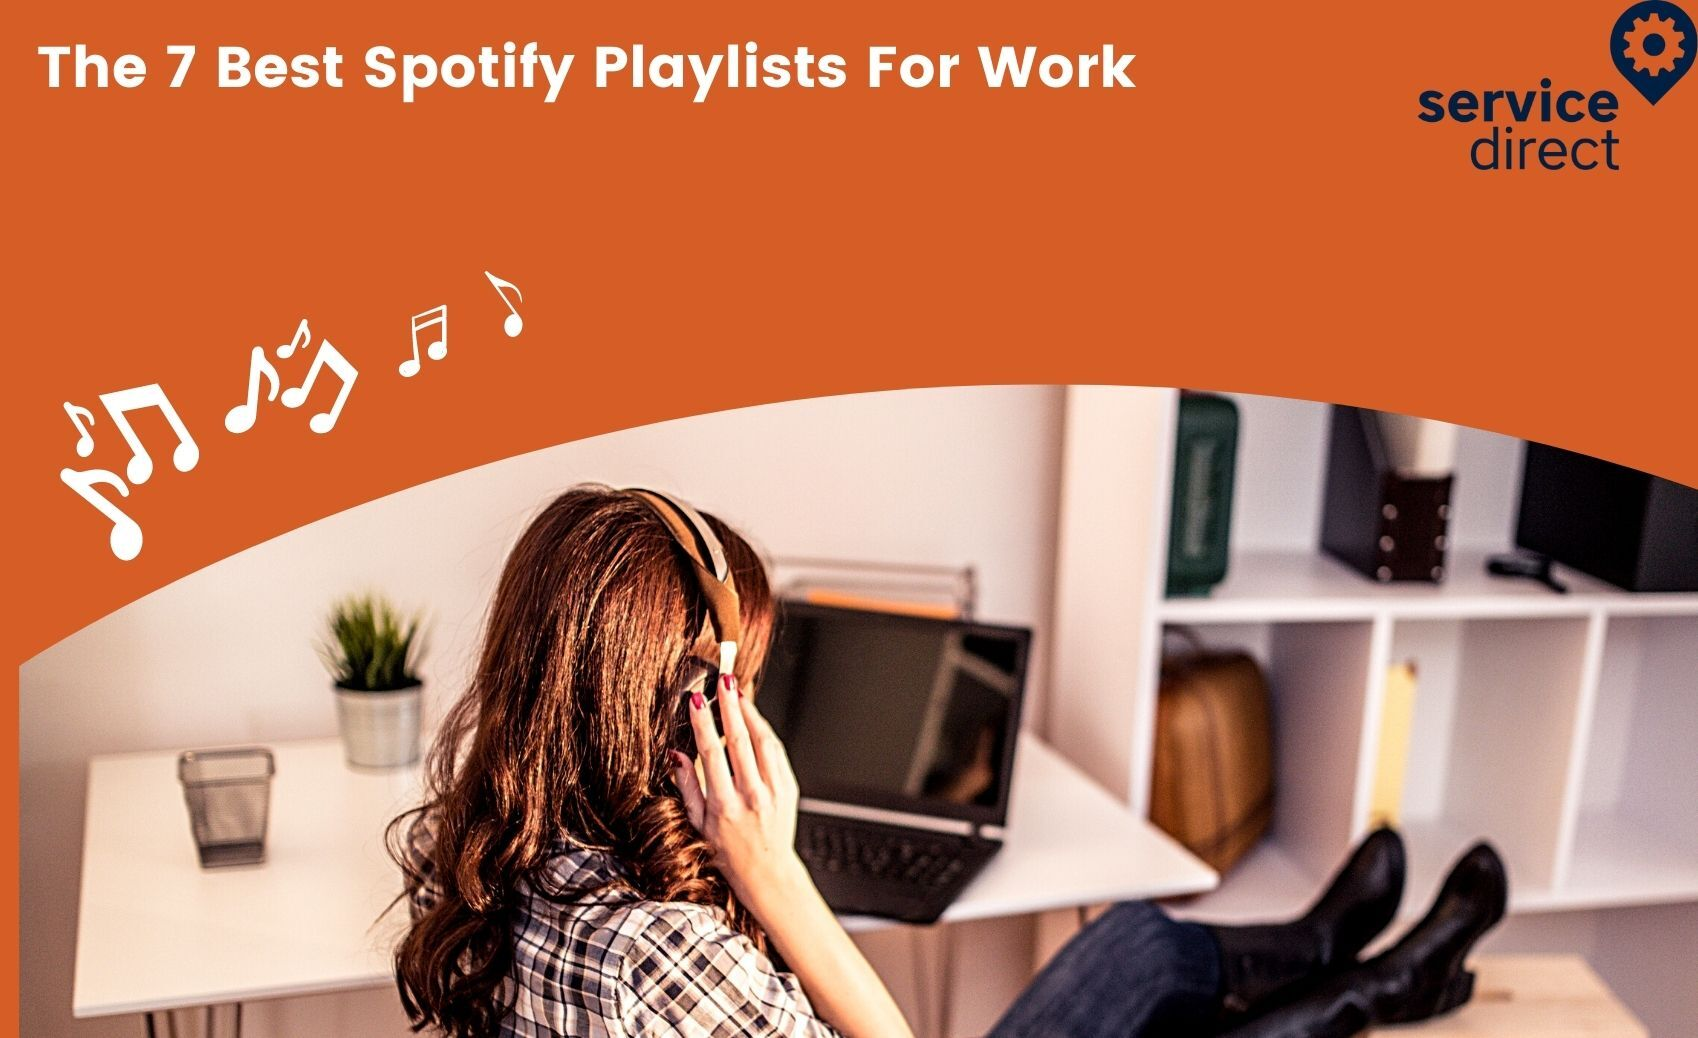 The 7 Best Spotify Playlists For Work